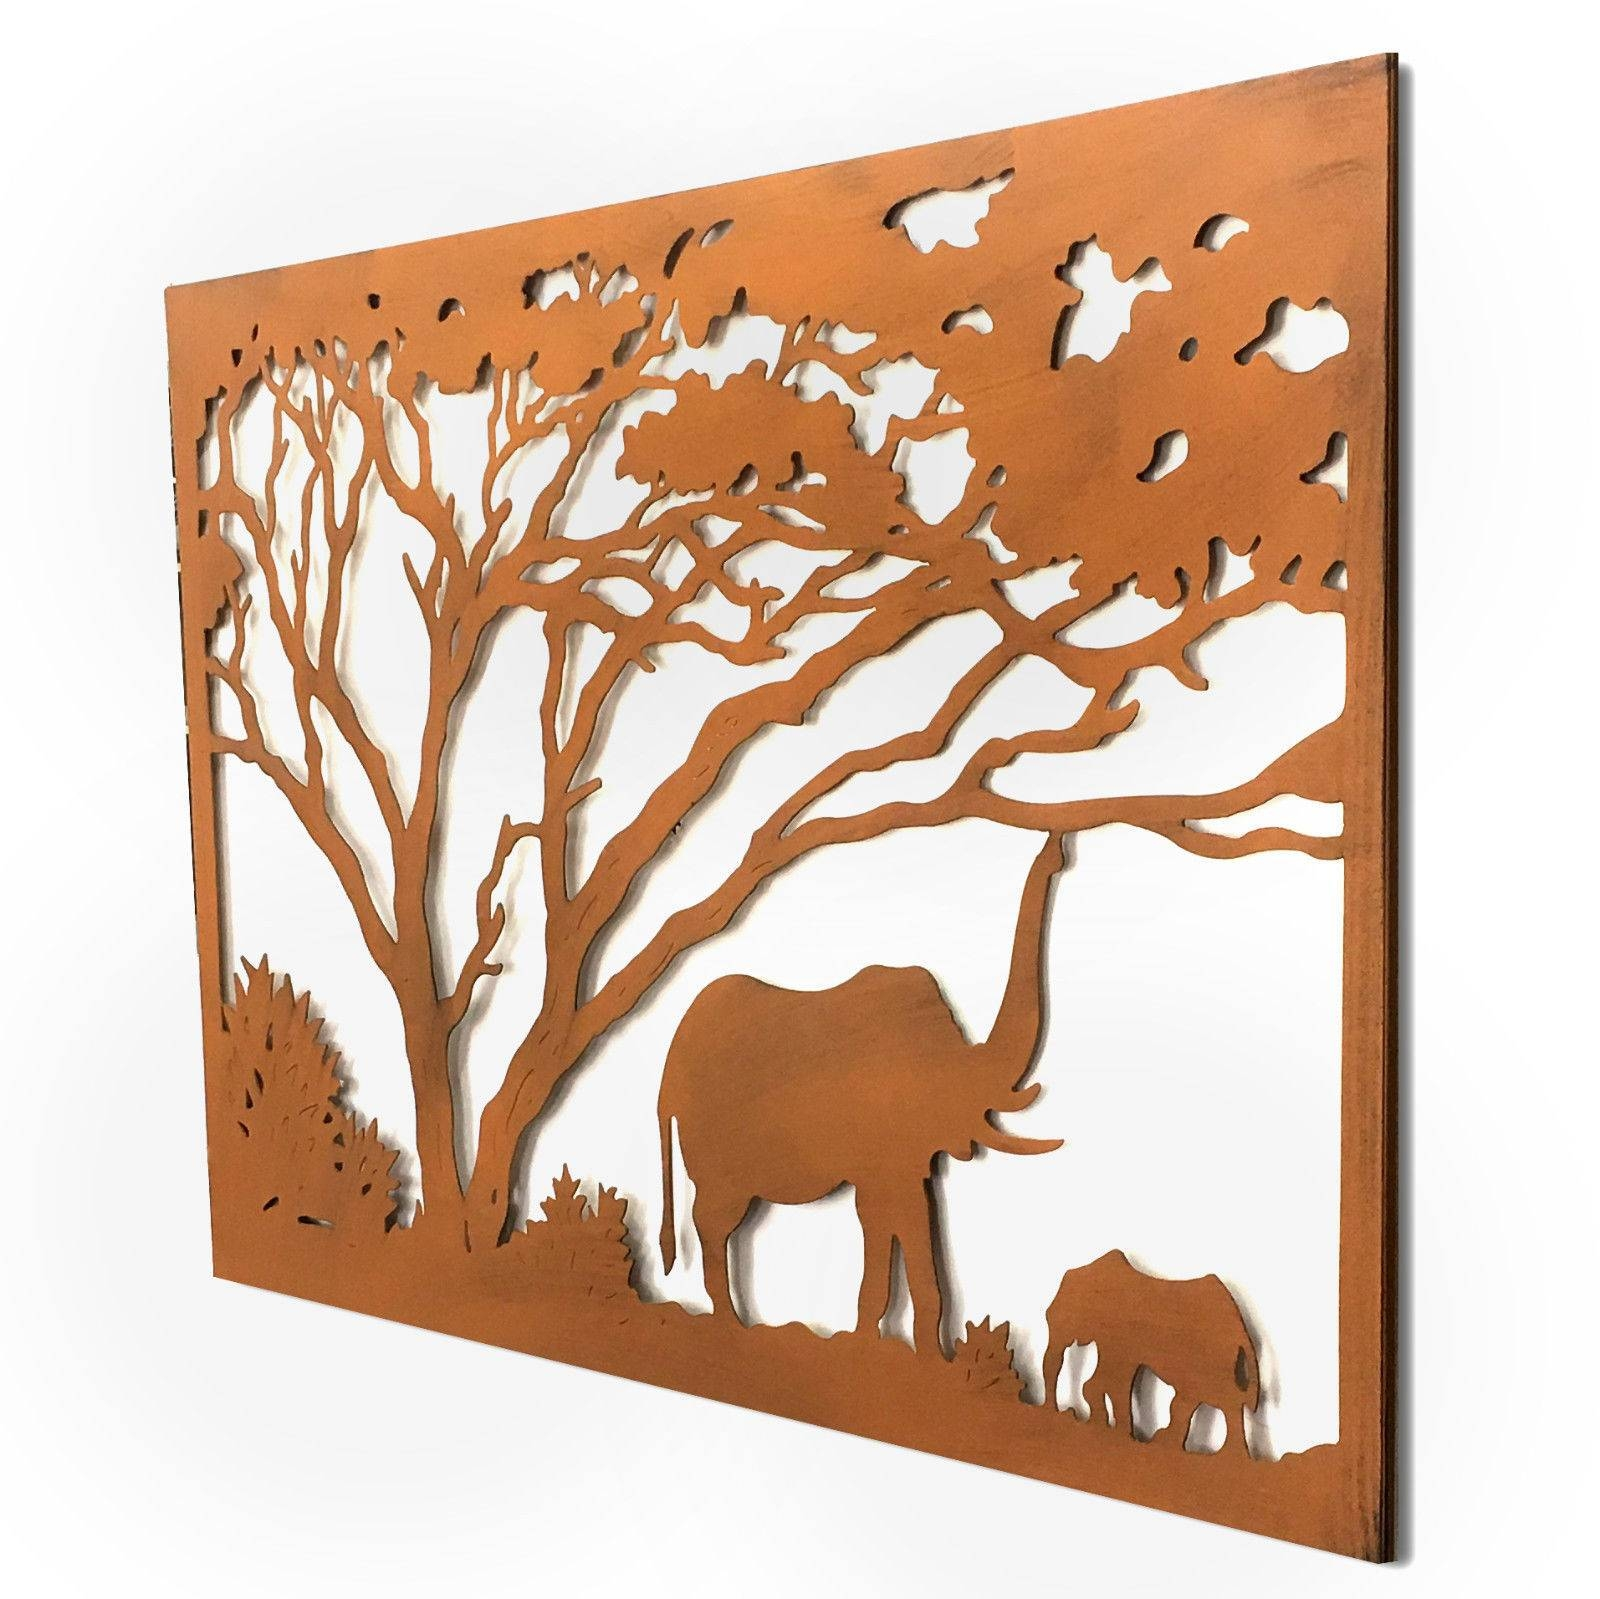 Elephants Under The Trees Lasercut Metal Wall Art 123Cm With Regard To Best And Newest Elephant Metal Wall Art (Gallery 5 of 20)